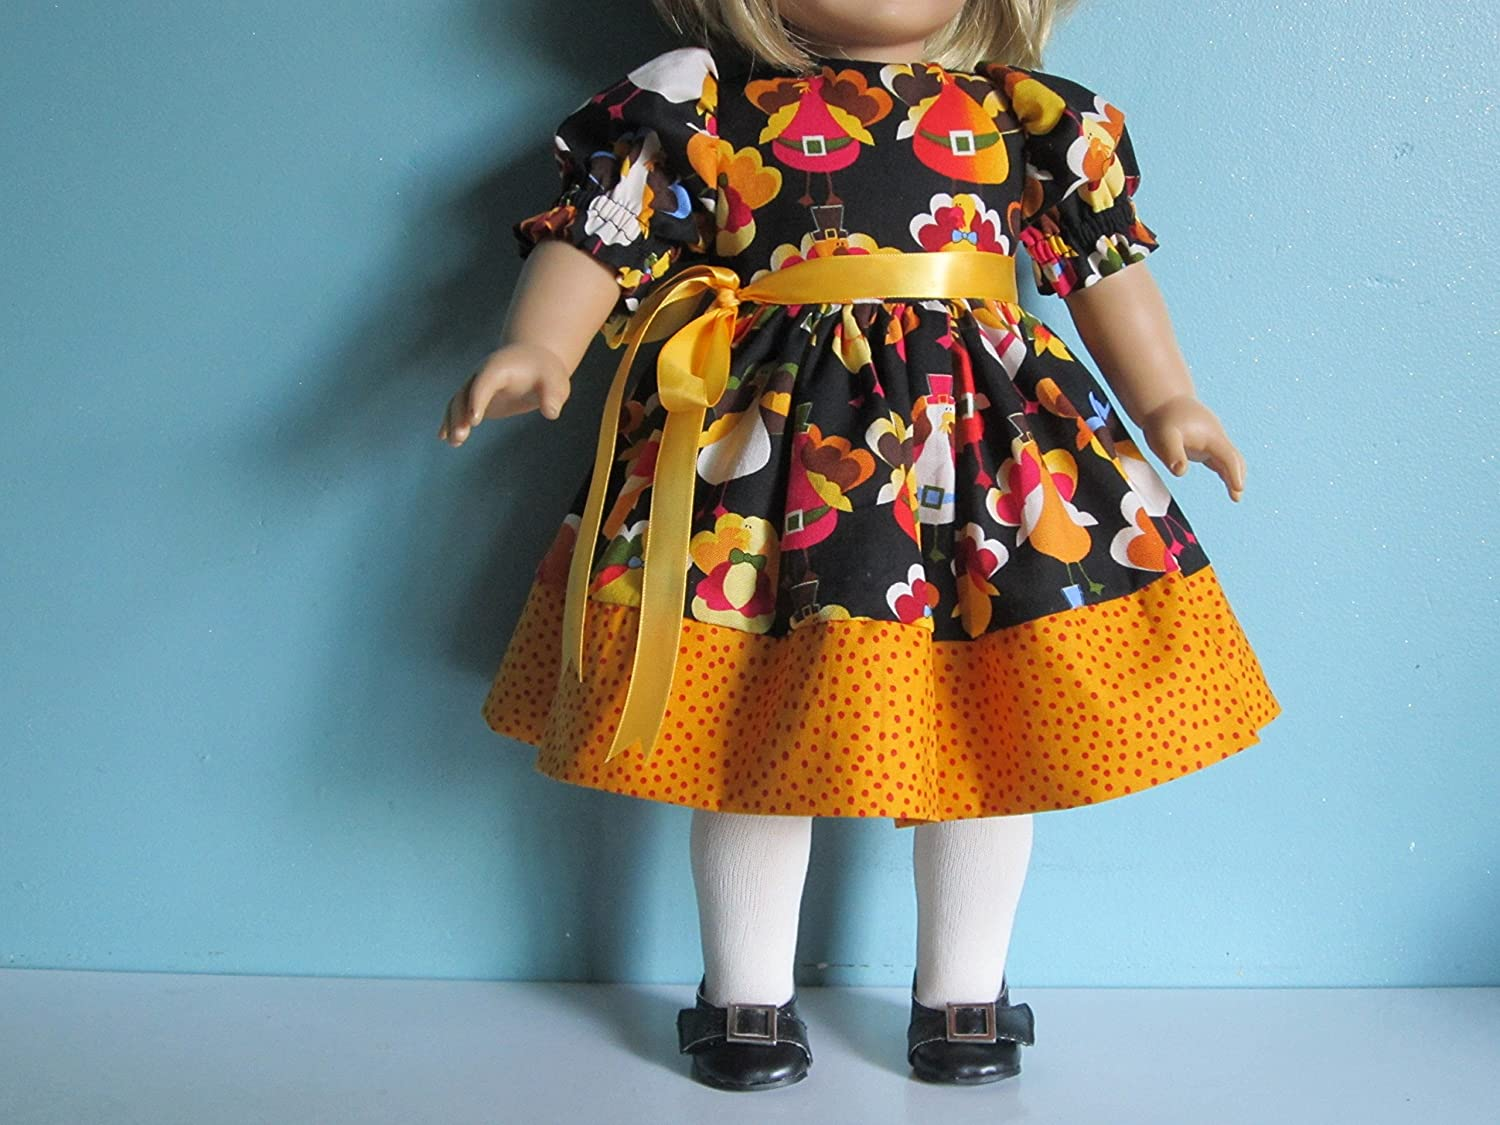 Colorful /& Fun!! Whimsical Thanksgiving Turkey Dress fits American Girl